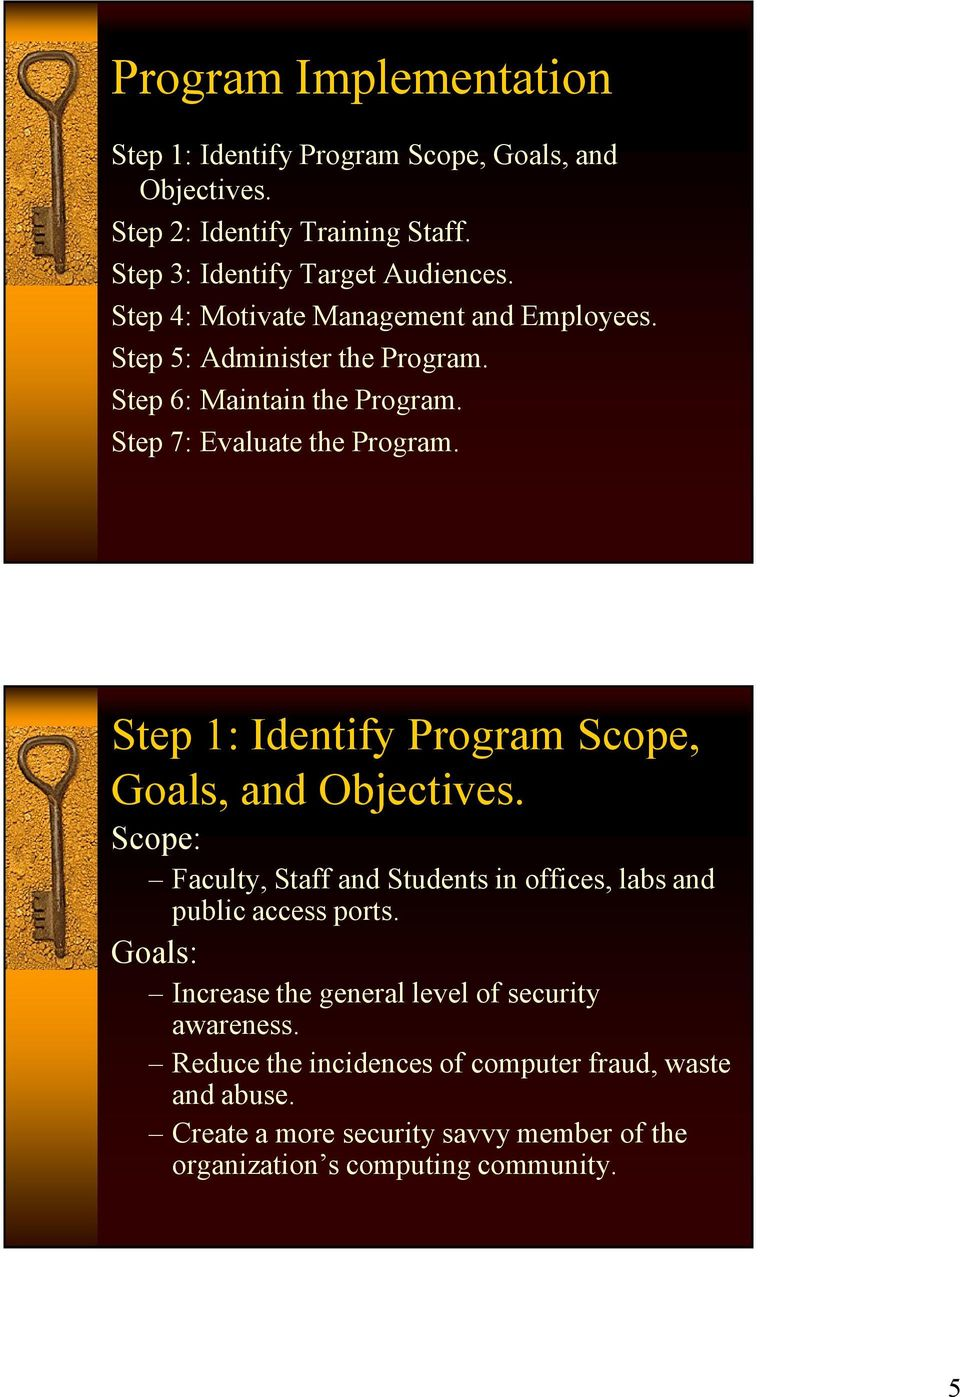 Step 1: Identify Program Scope, Goals, and Objectives. Scope: Faculty, Staff and Students in offices, labs and public access ports.